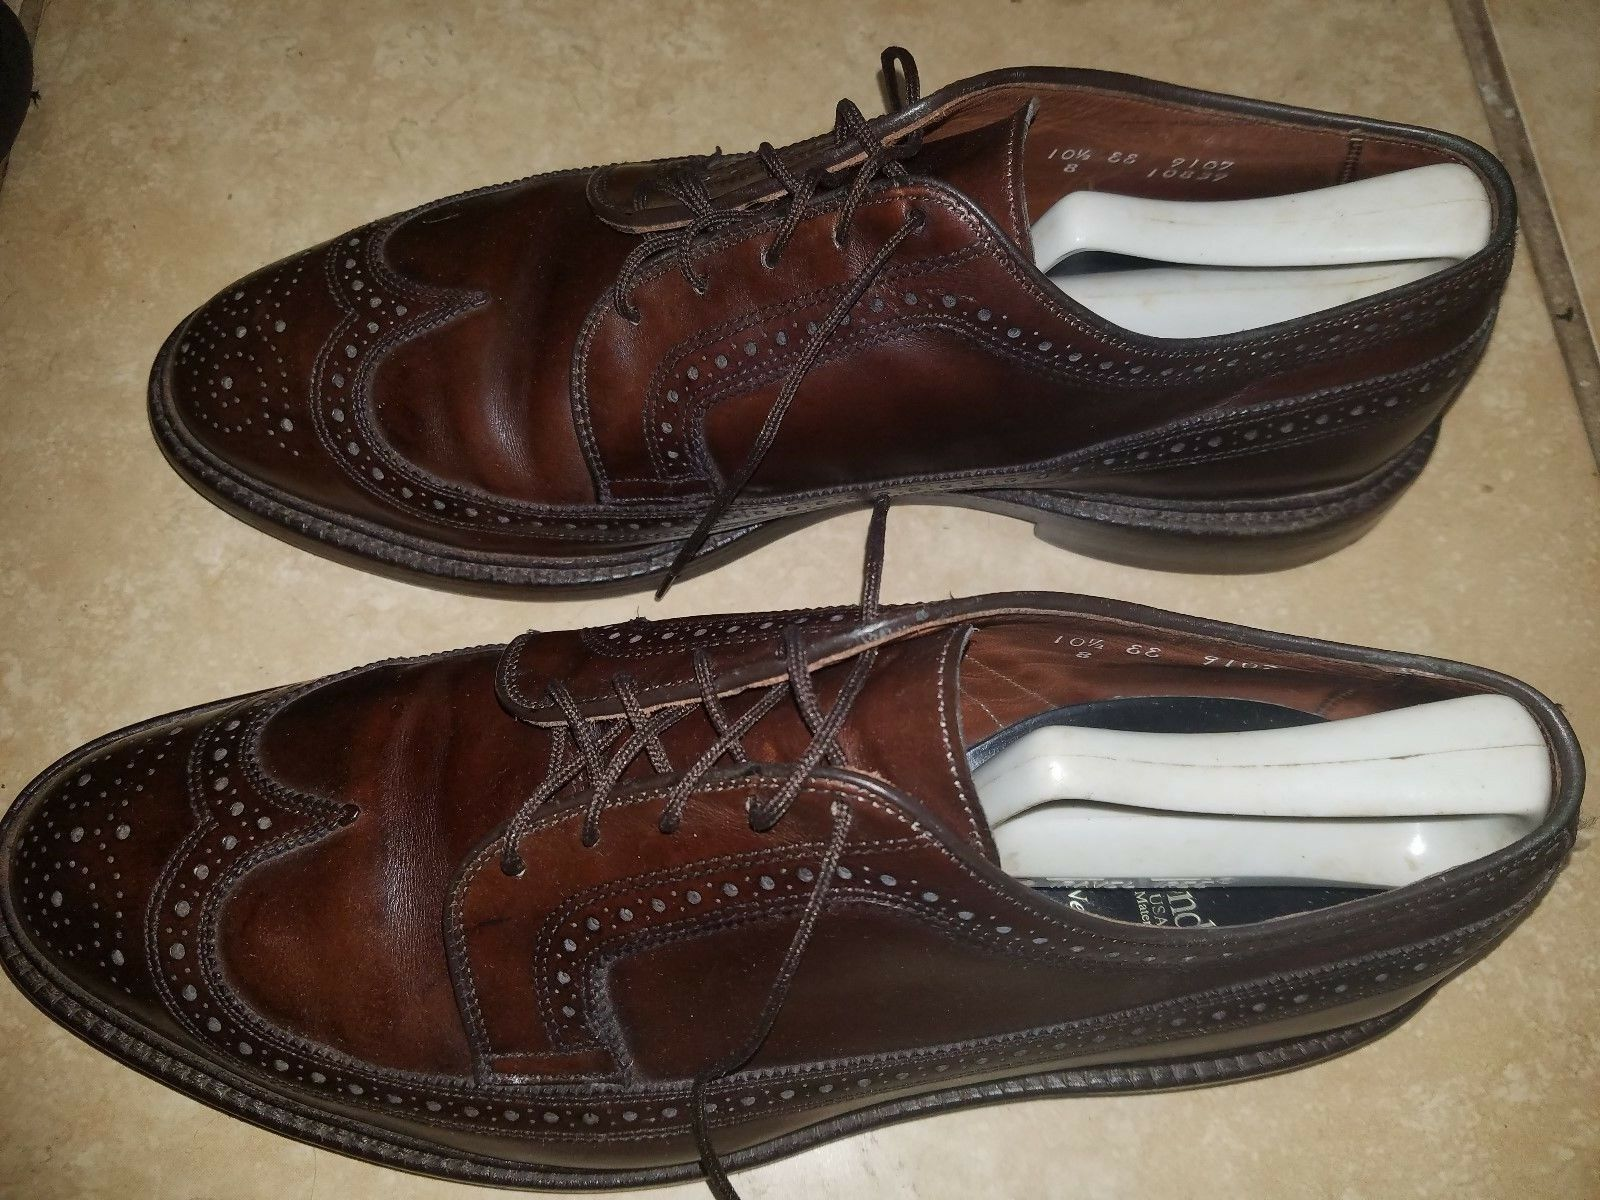 Allen Edmonds MacNeil 10.5 EE Burgundy Wingtips, 9107 44,5EU 44,5EU 44,5EU  425 Recraftable 076cc3